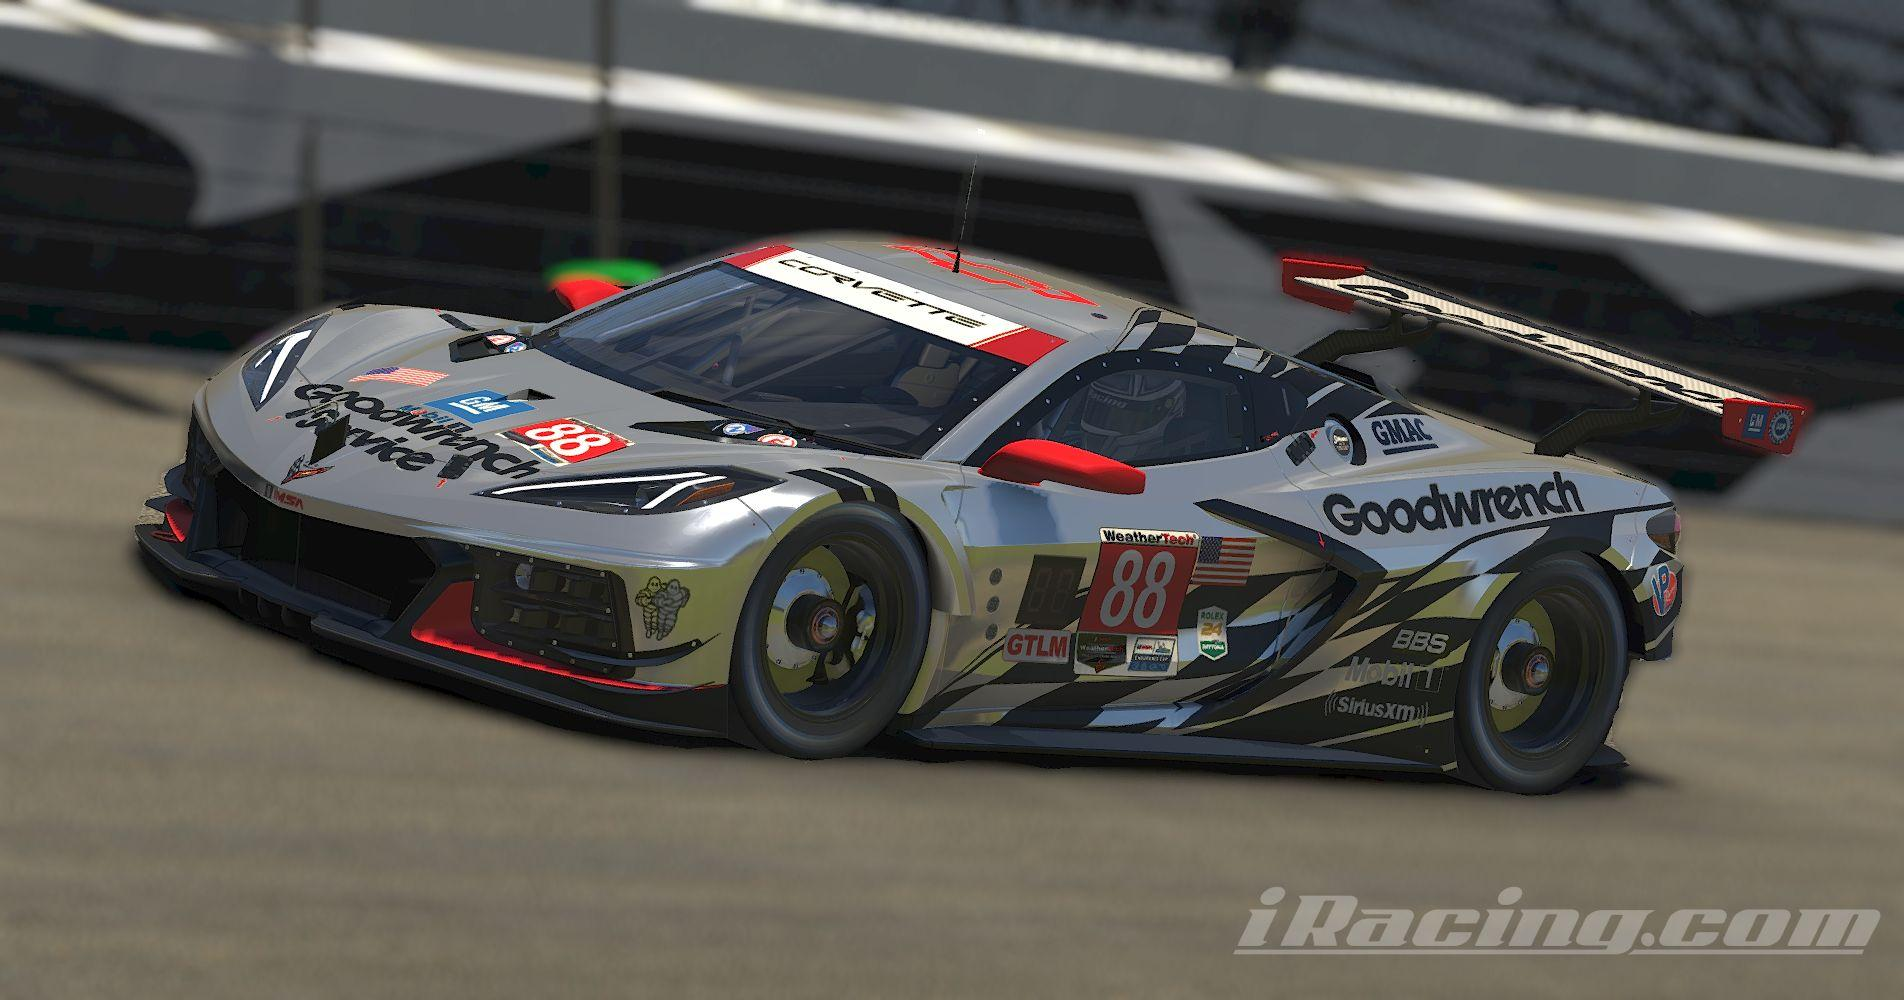 Preview of Corvette C8R Goodwrench Service Plus by Stephane Parent